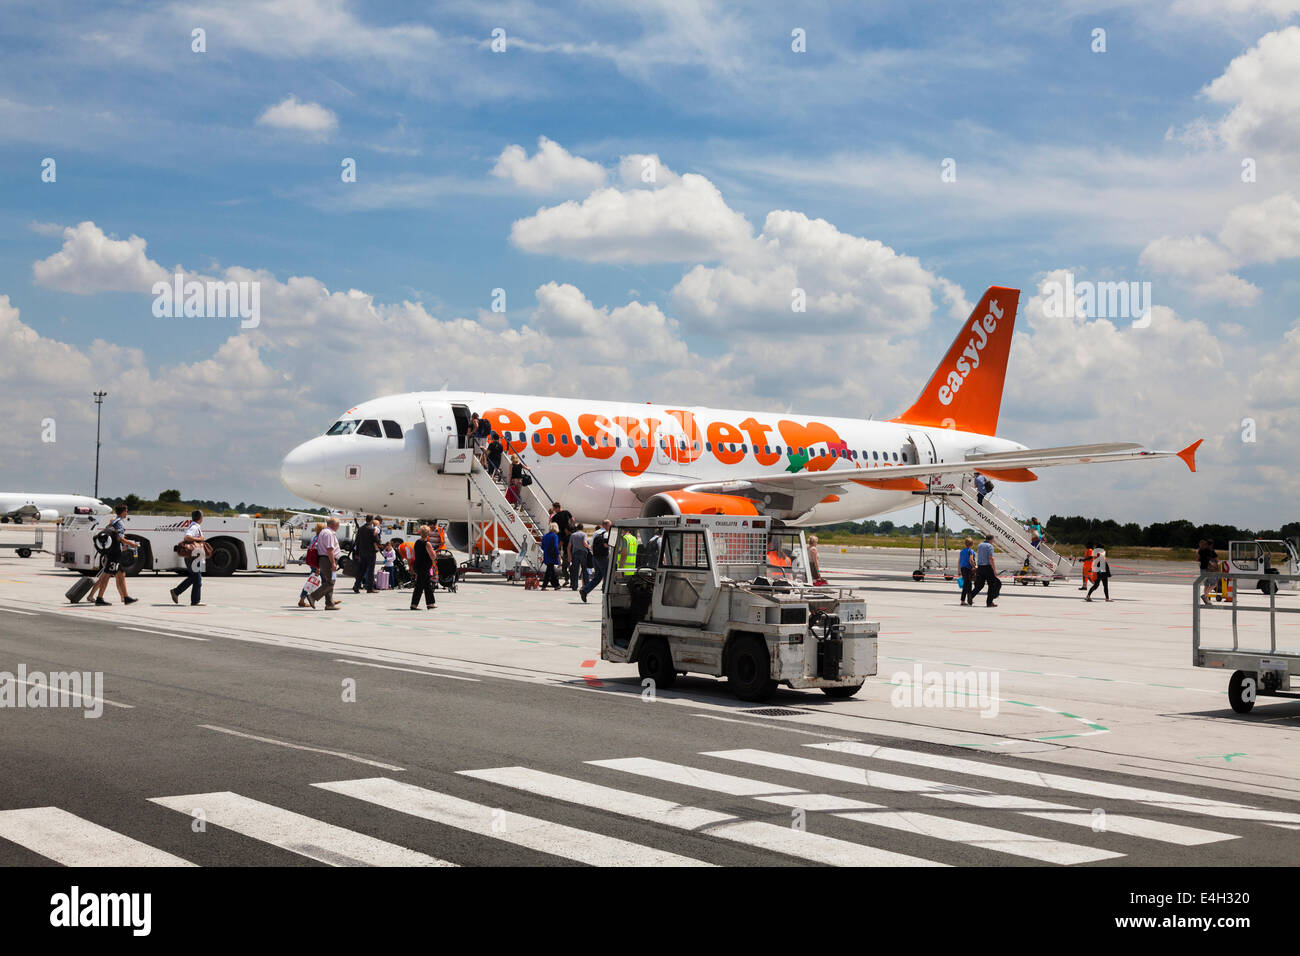 Passengers walking to Easyjet Aircraft for boarding. - Stock Image